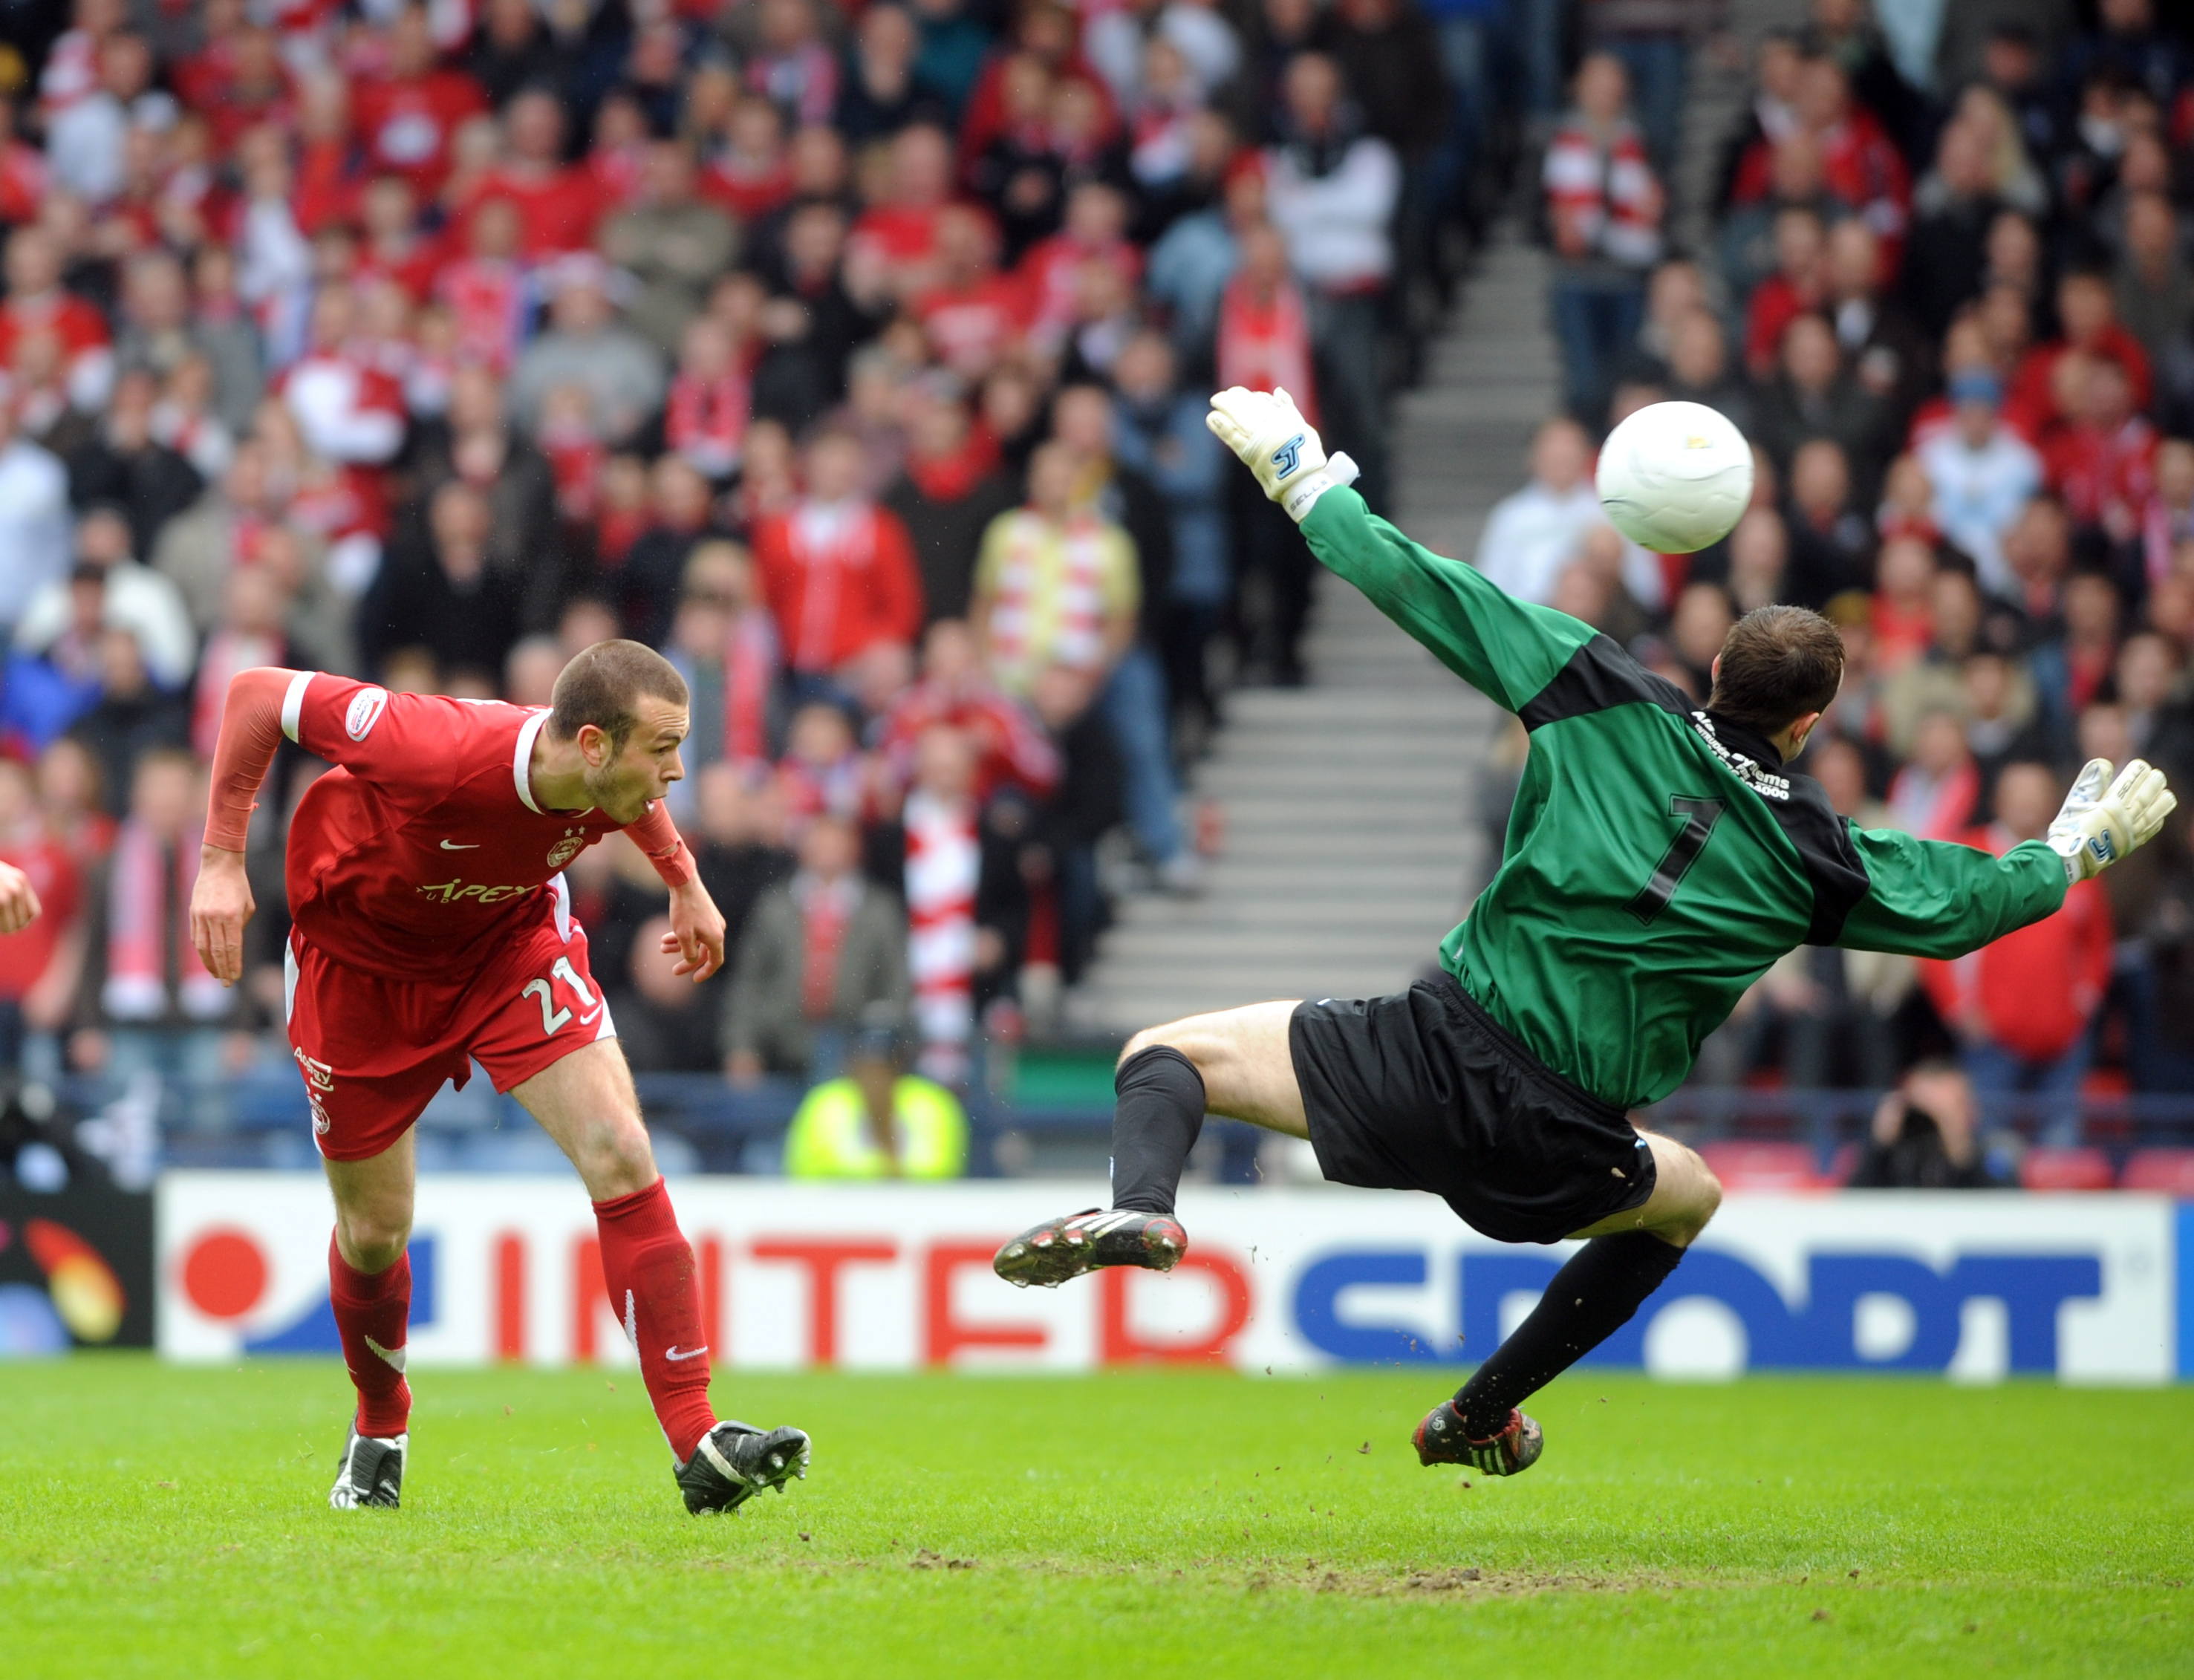 Andy Considine nets the second goal against Queen of the South in 2008.